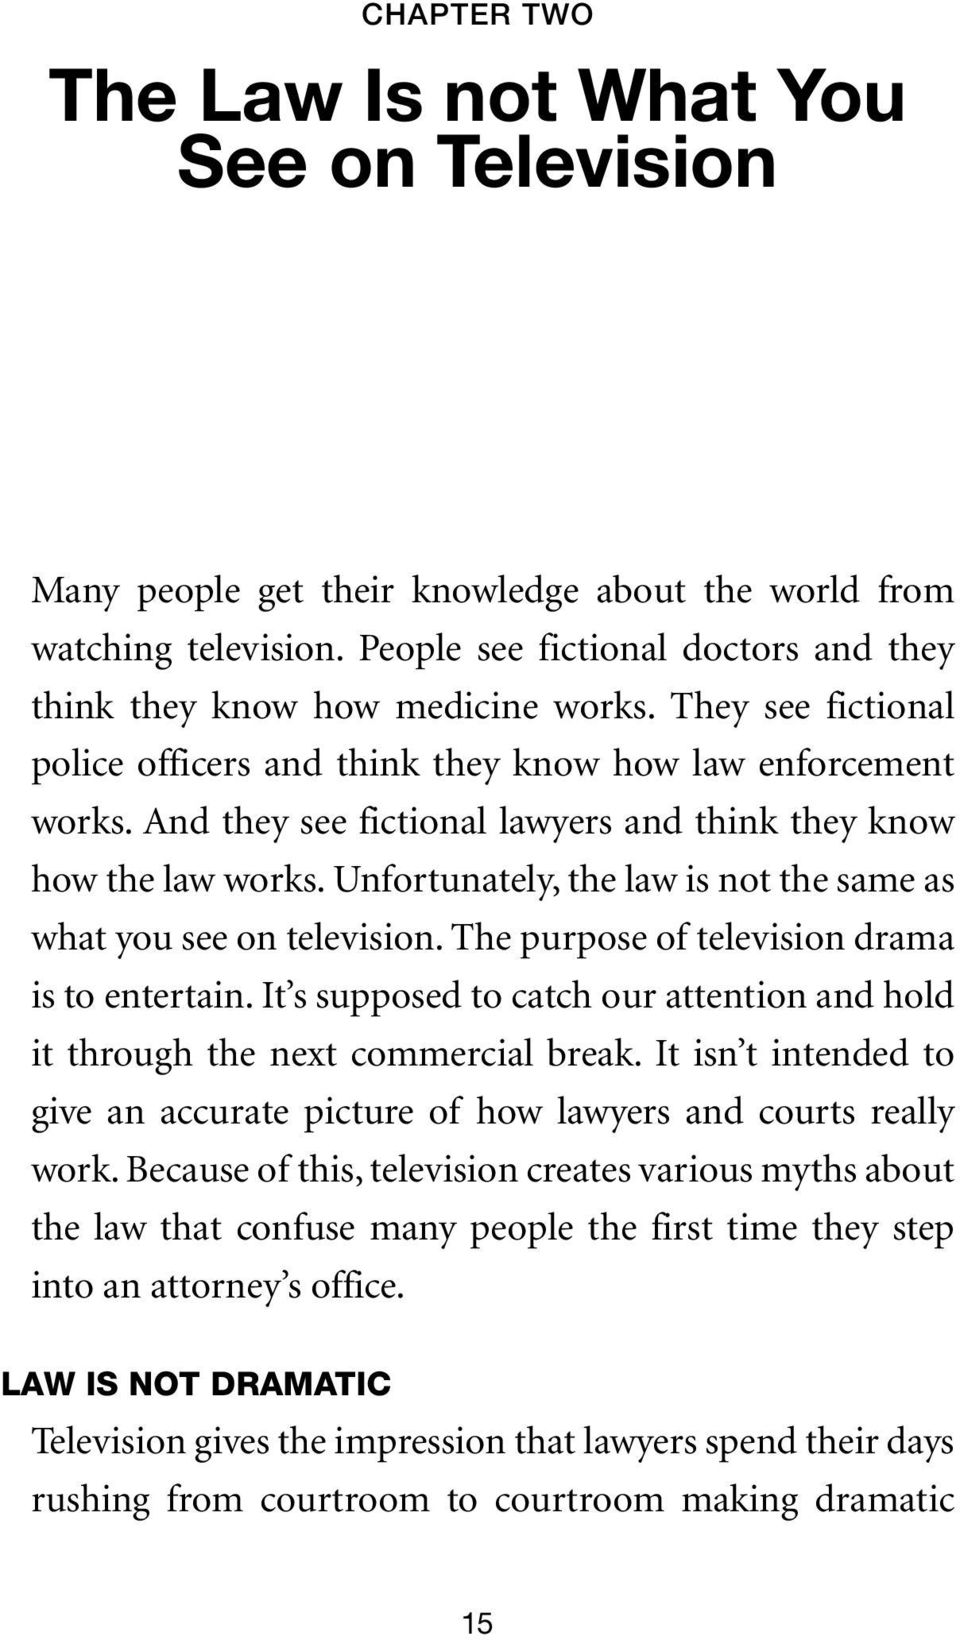 And they see fictional lawyers and think they know how the law works. Unfortunately, the law is not the same as what you see on television. The purpose of television drama is to entertain.